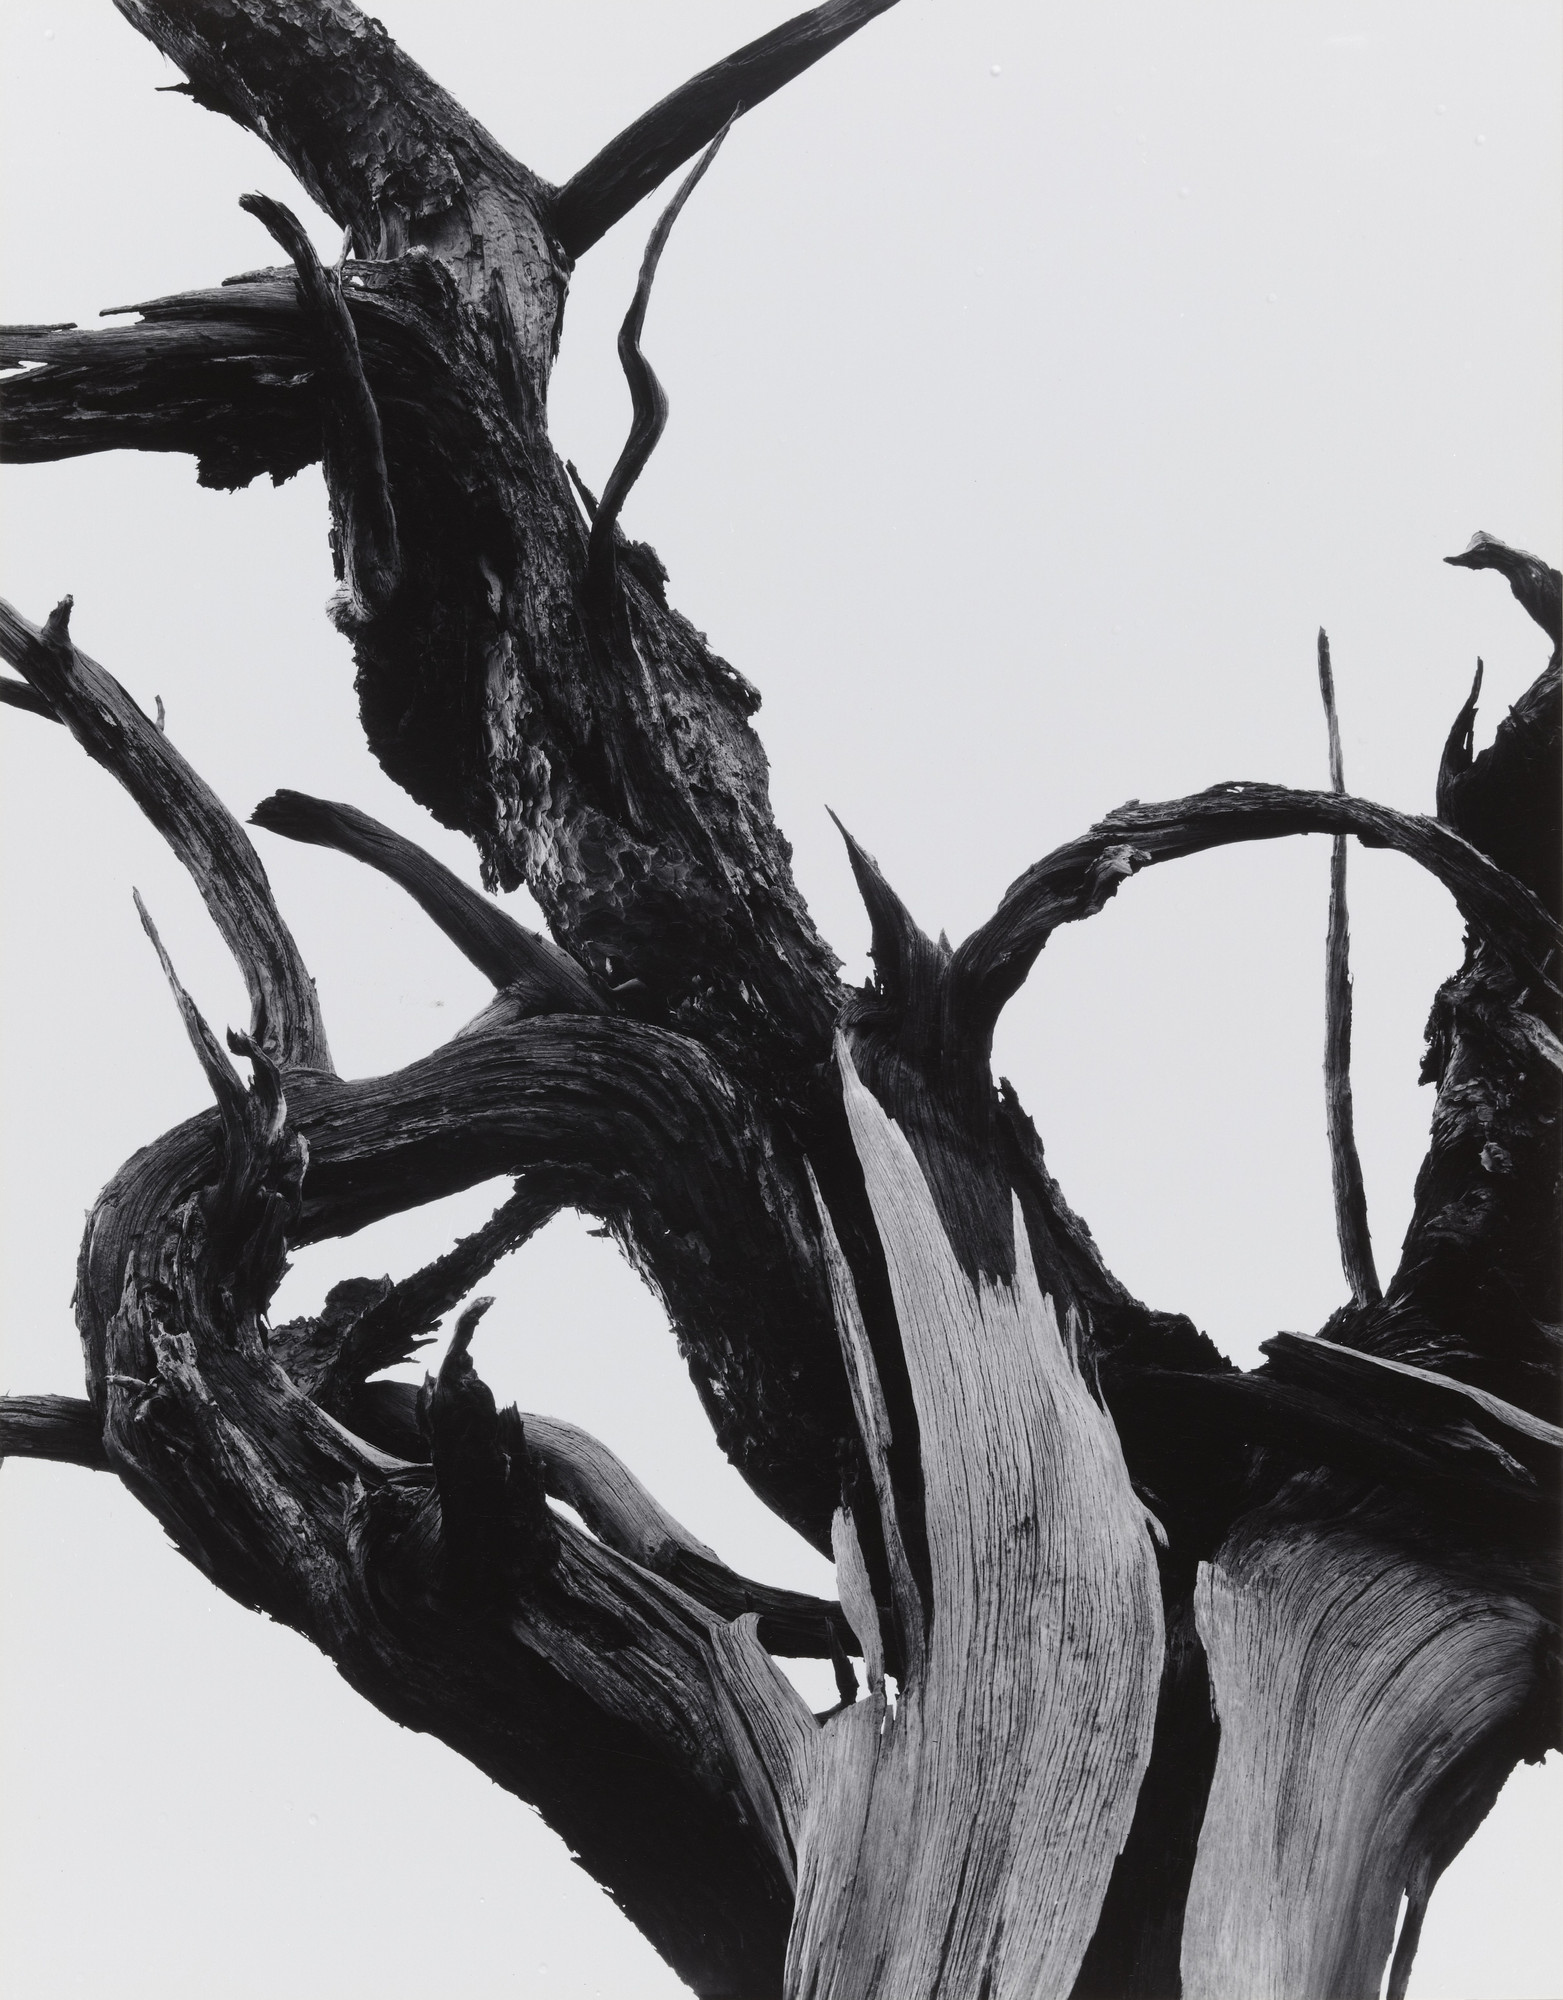 Ansel Adams. Dead Tree, Sunset Crater National Monument, Arizona. 1947